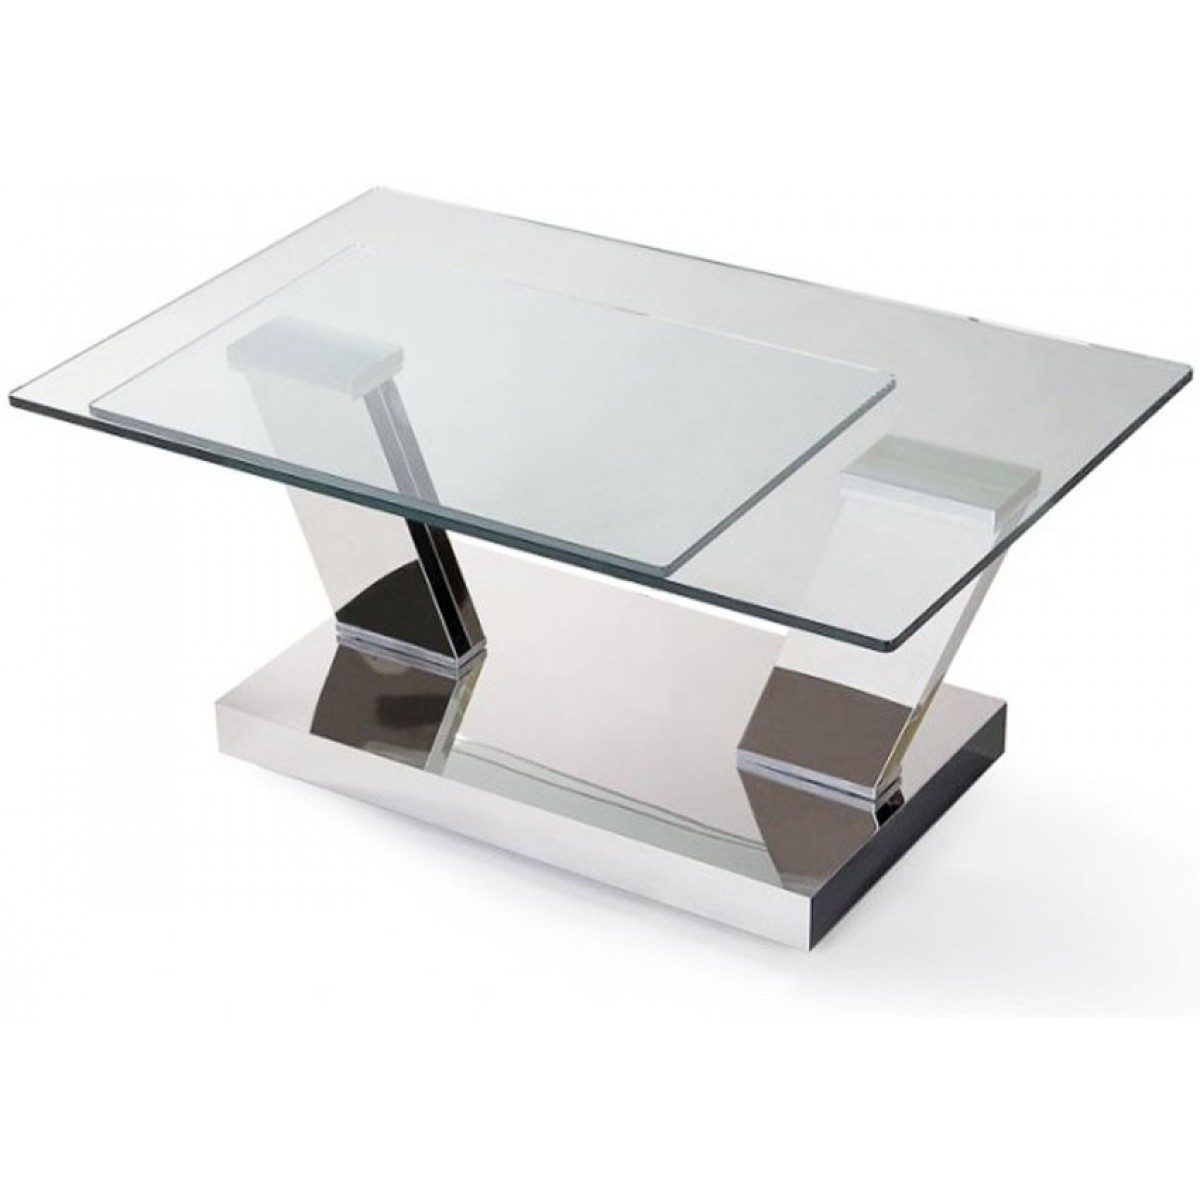 Table basse double plateaux transparents carr s chrom s briega pop - Table salon verre design ...